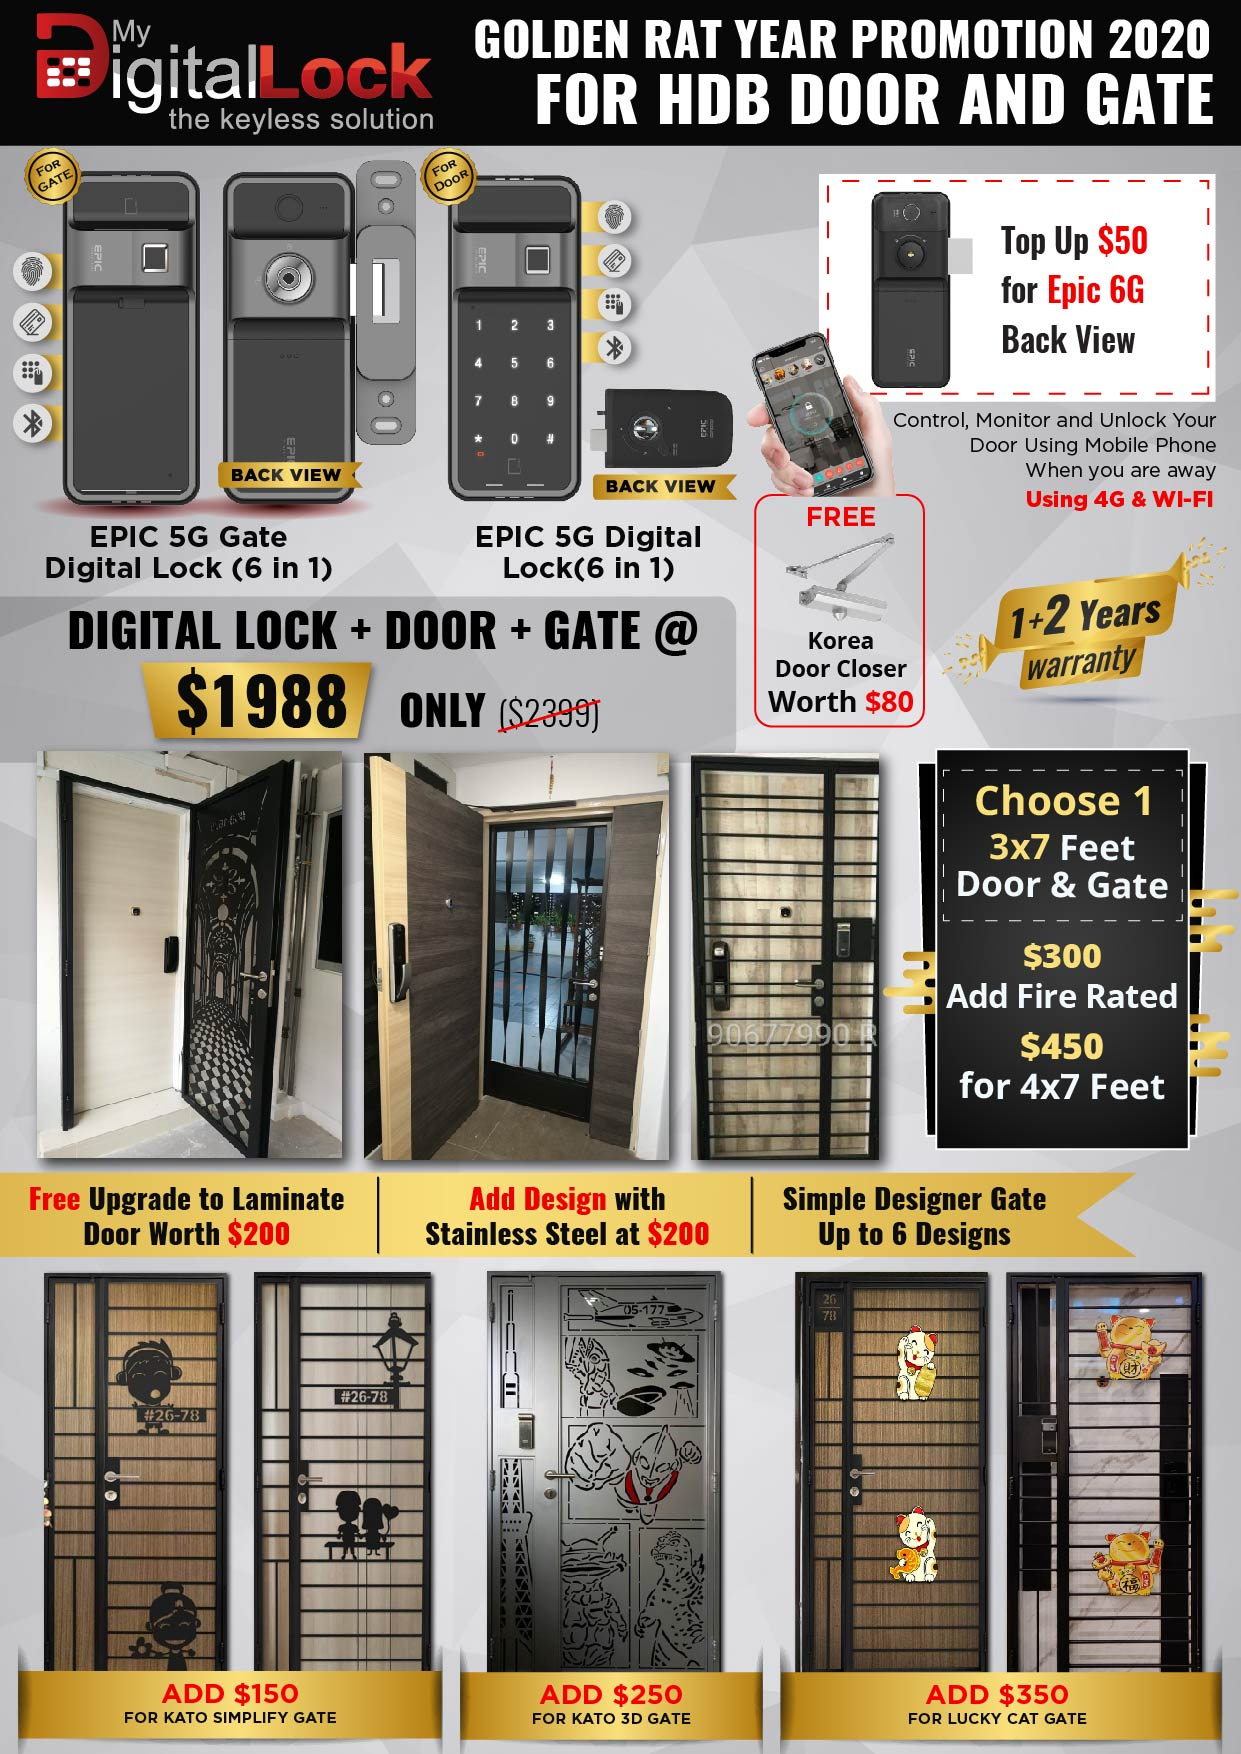 Golden-Rat-Year-HDB-Door-and-Gate-Promotion-with-EPIC-Gate-Digital-Lock-and-5G-Digi